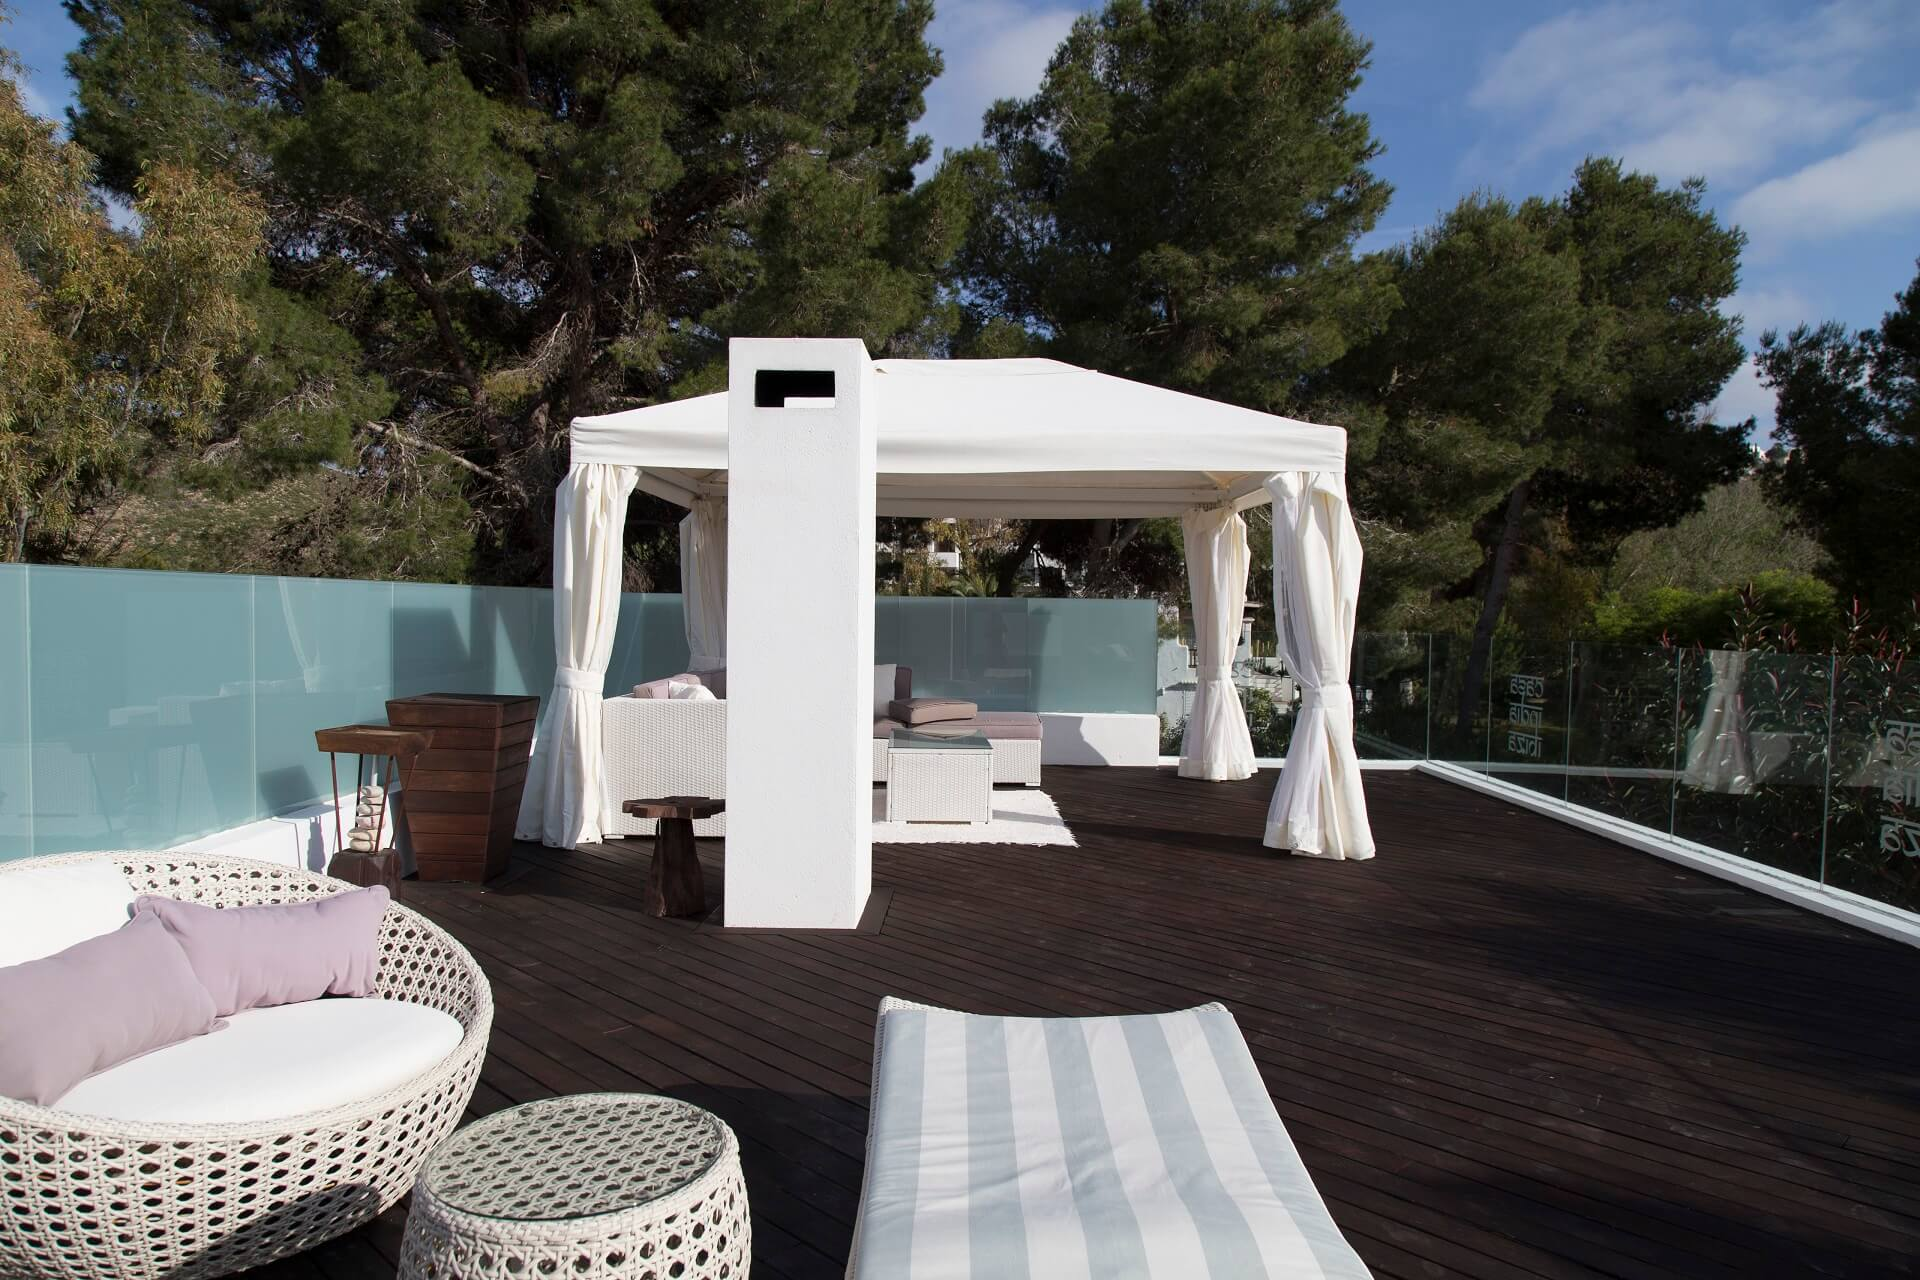 Casa India Ibiza - Roof terrace with chill-out area